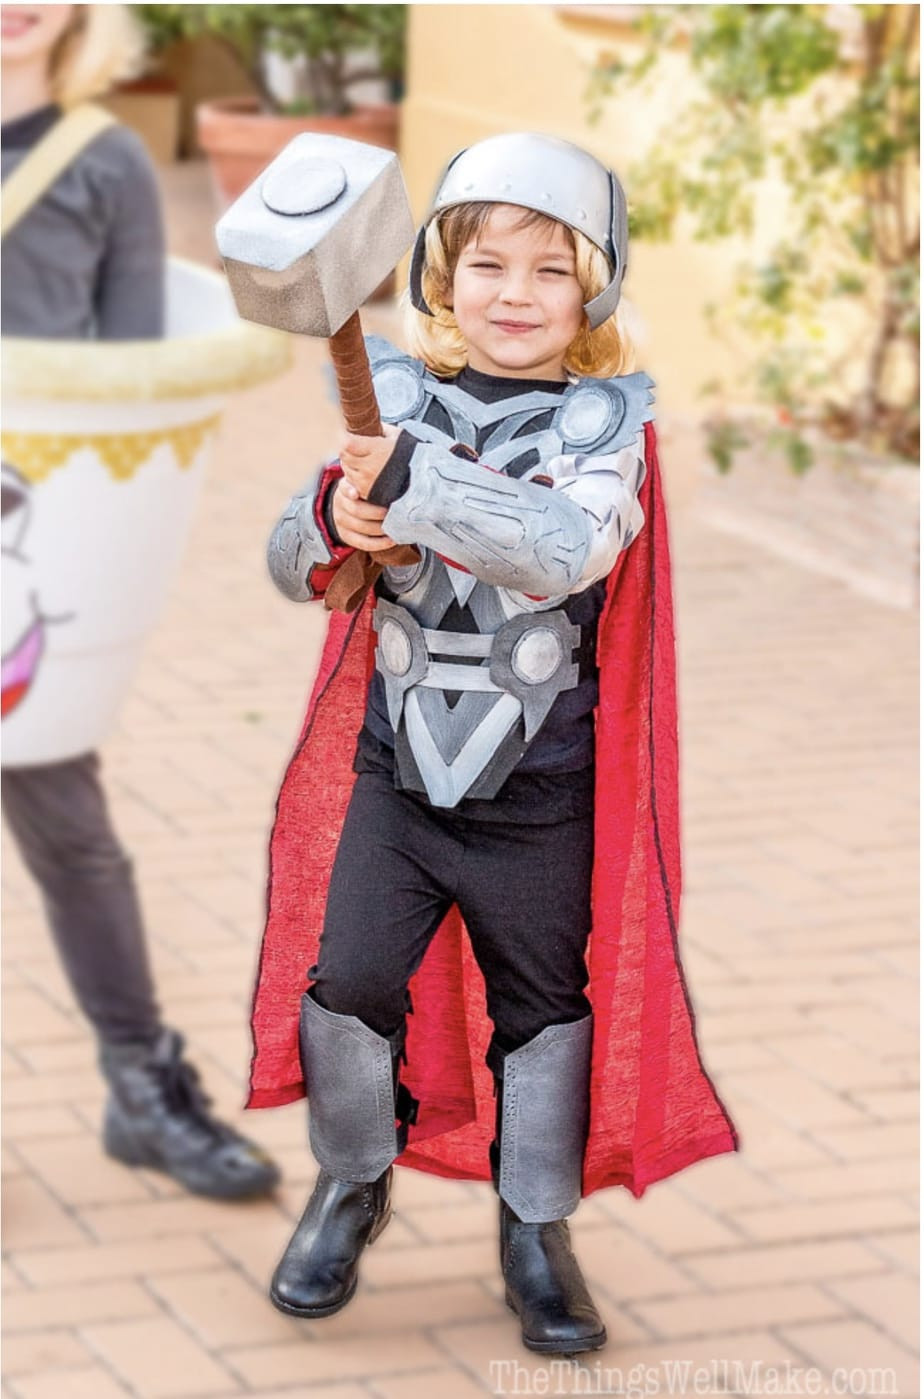 Best ideas about DIY Superhero Costumes For Kids . Save or Pin DIY Superhero Costumes Cutesy Crafts Now.